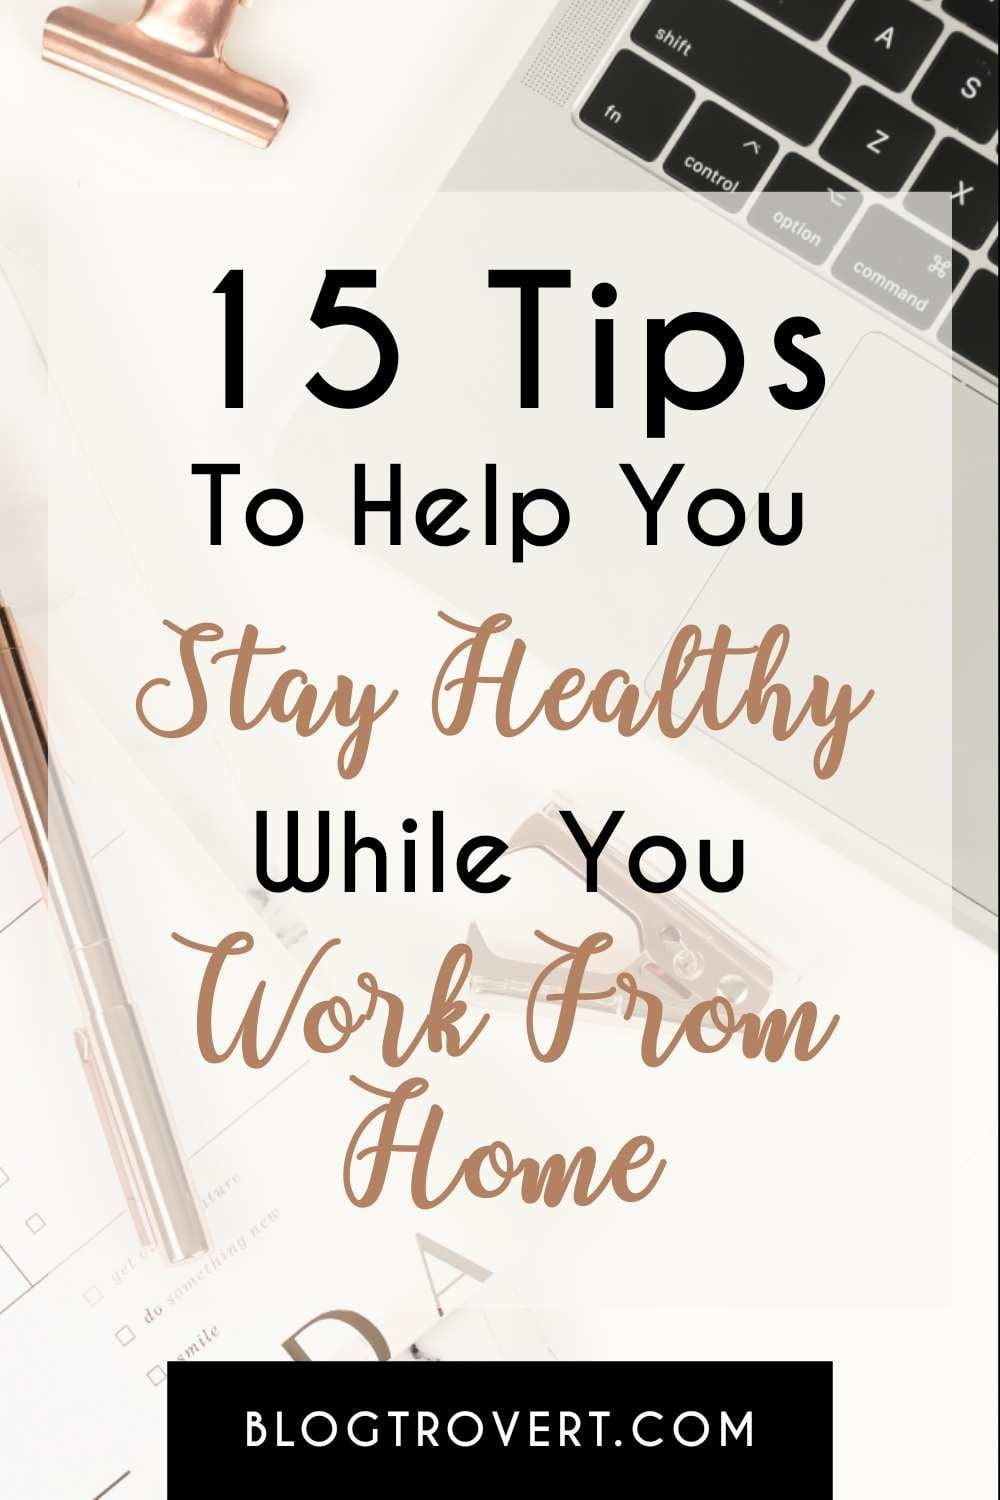 Tips to work from home effectively